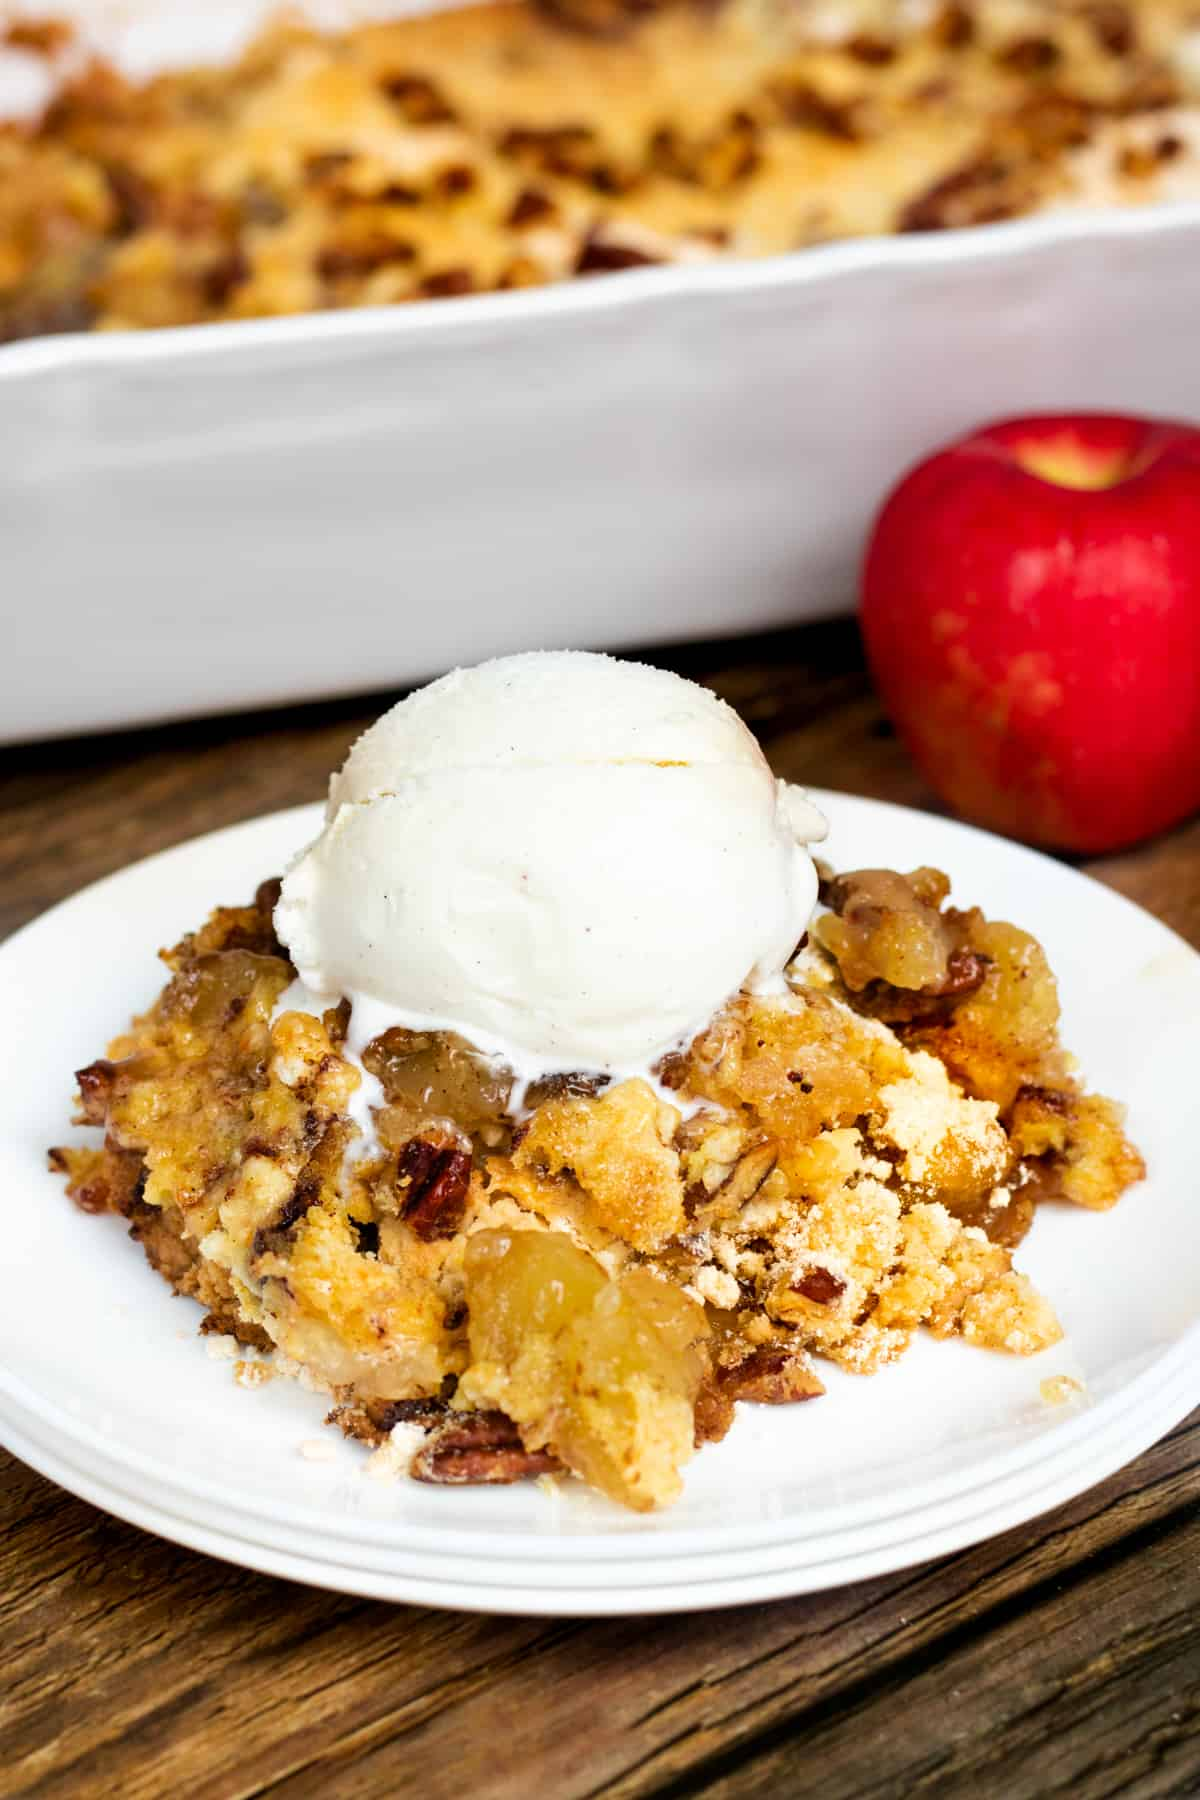 Apple dump cake served on white plate with scoop of vanilla ice cream. Baking pan with remaining cake and an apple are in background.